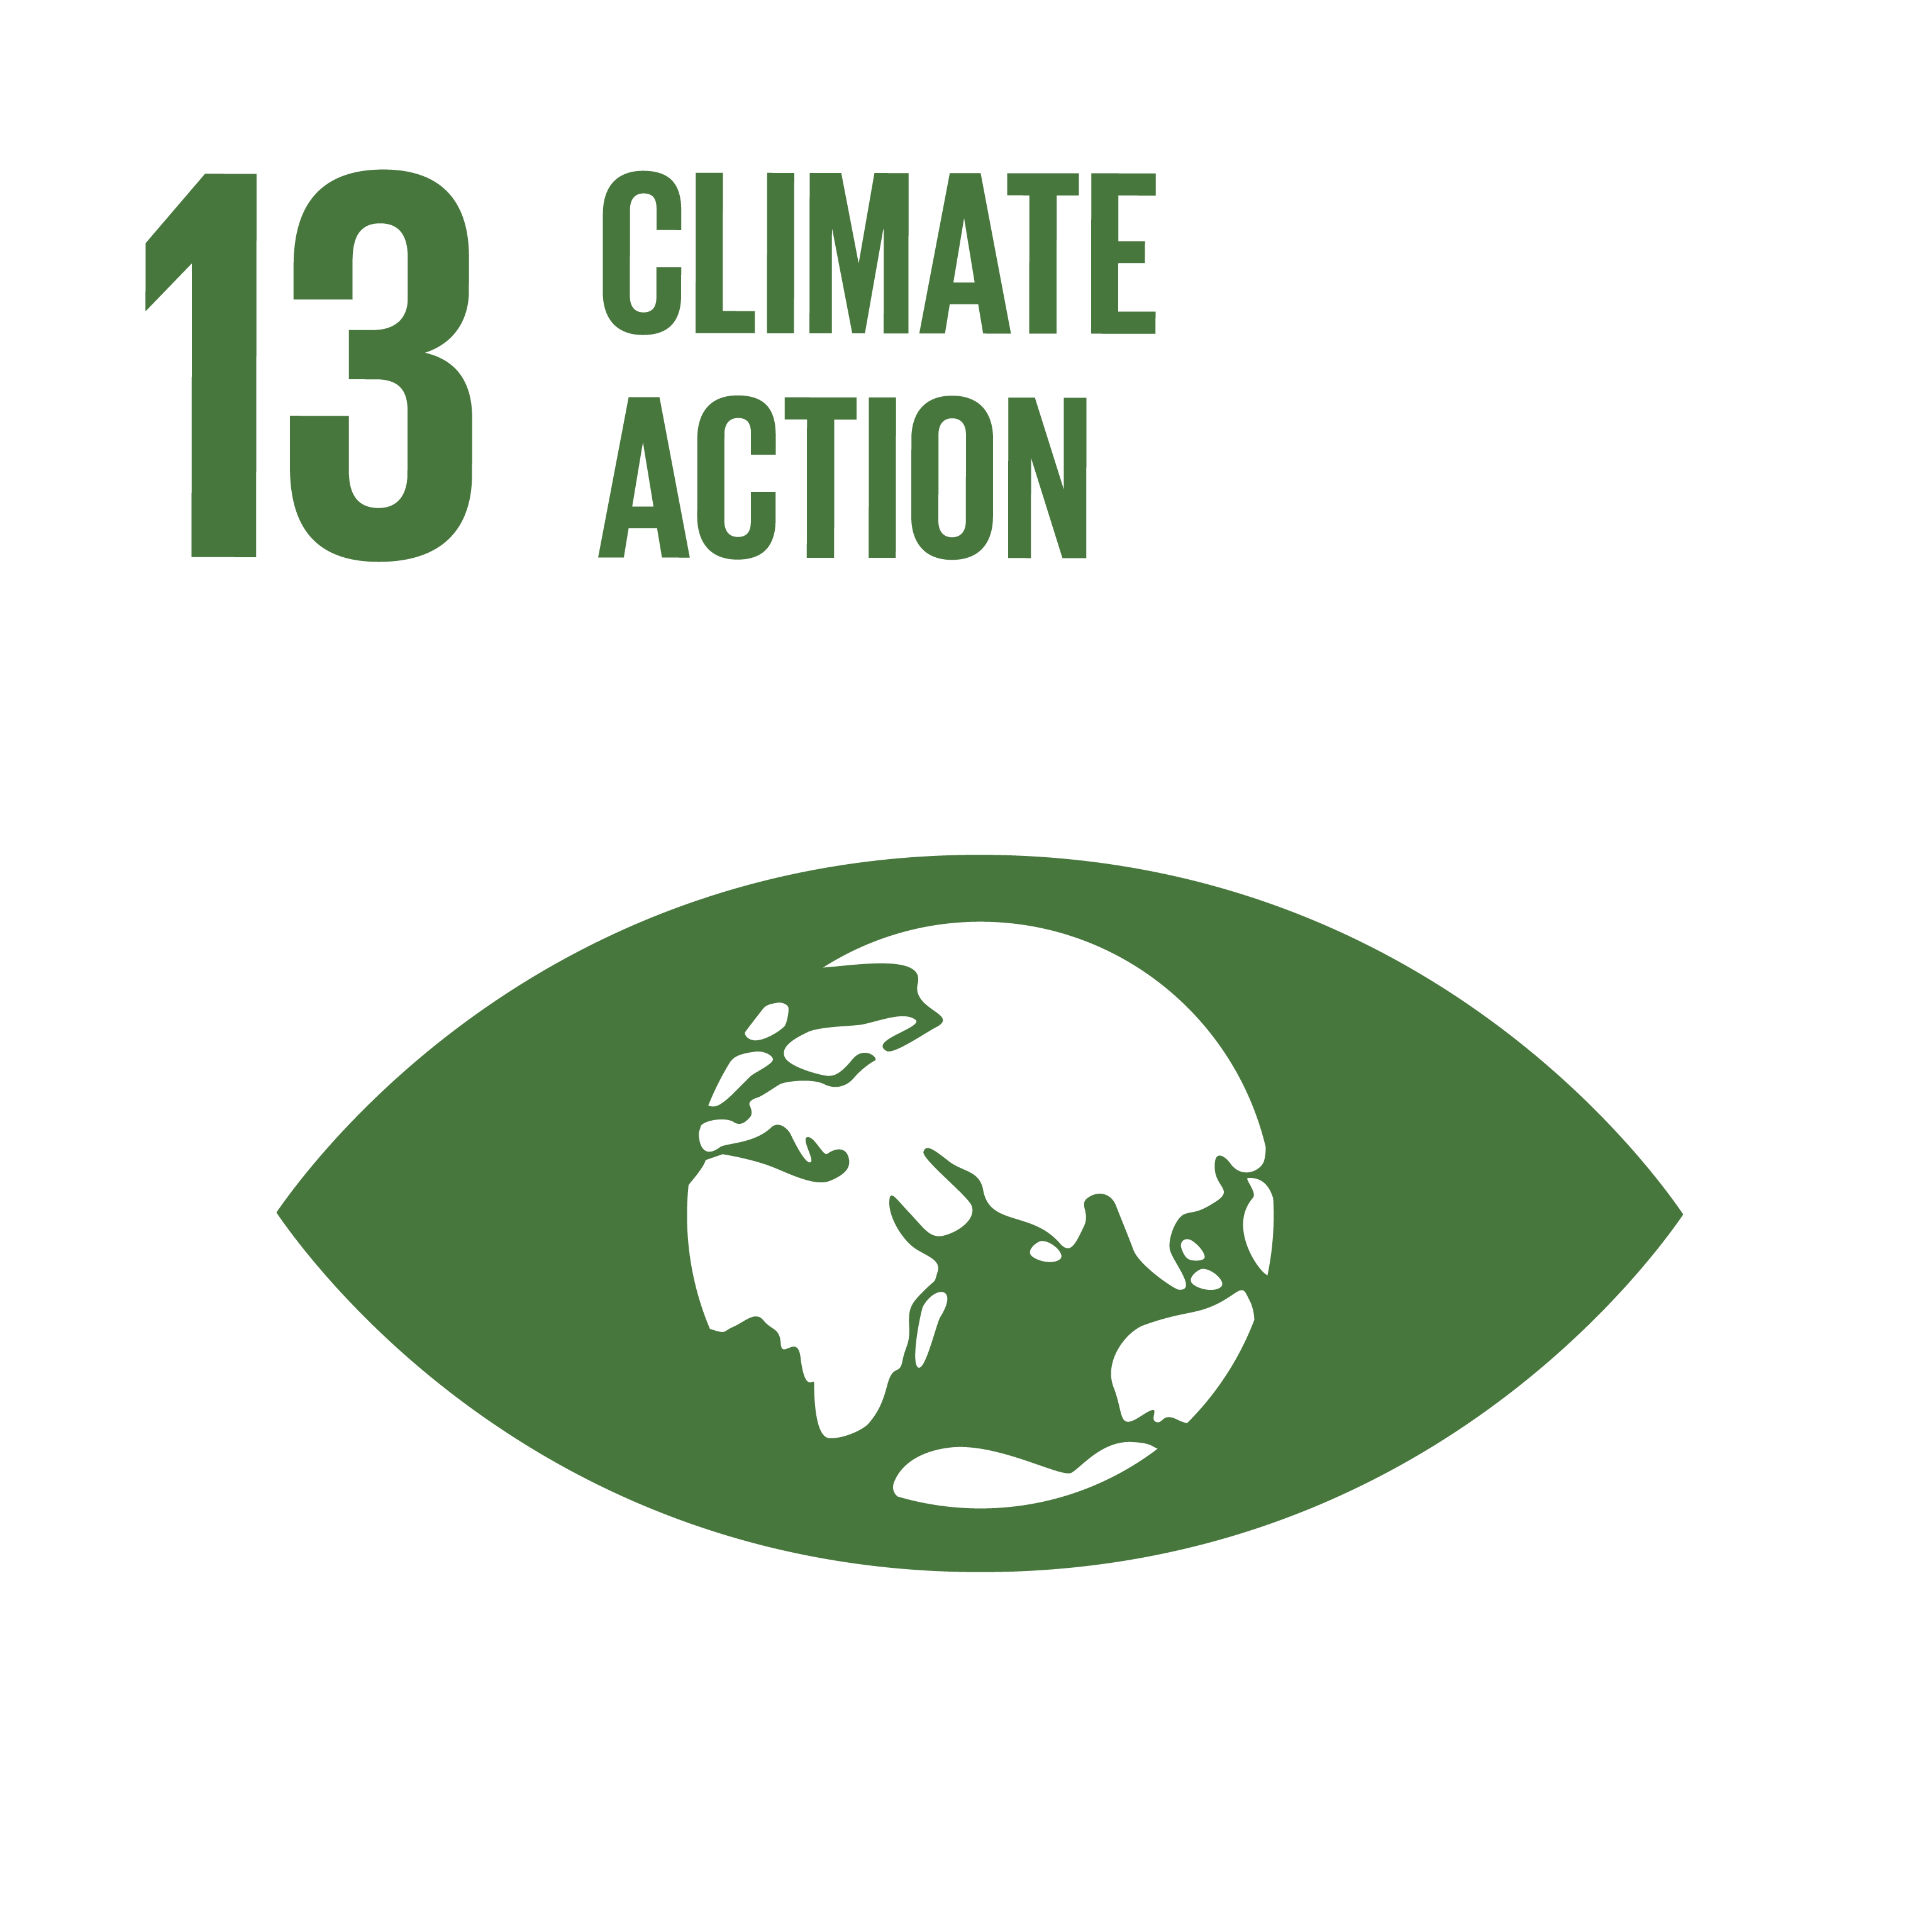 Sustainable Development Goals 13 climate action